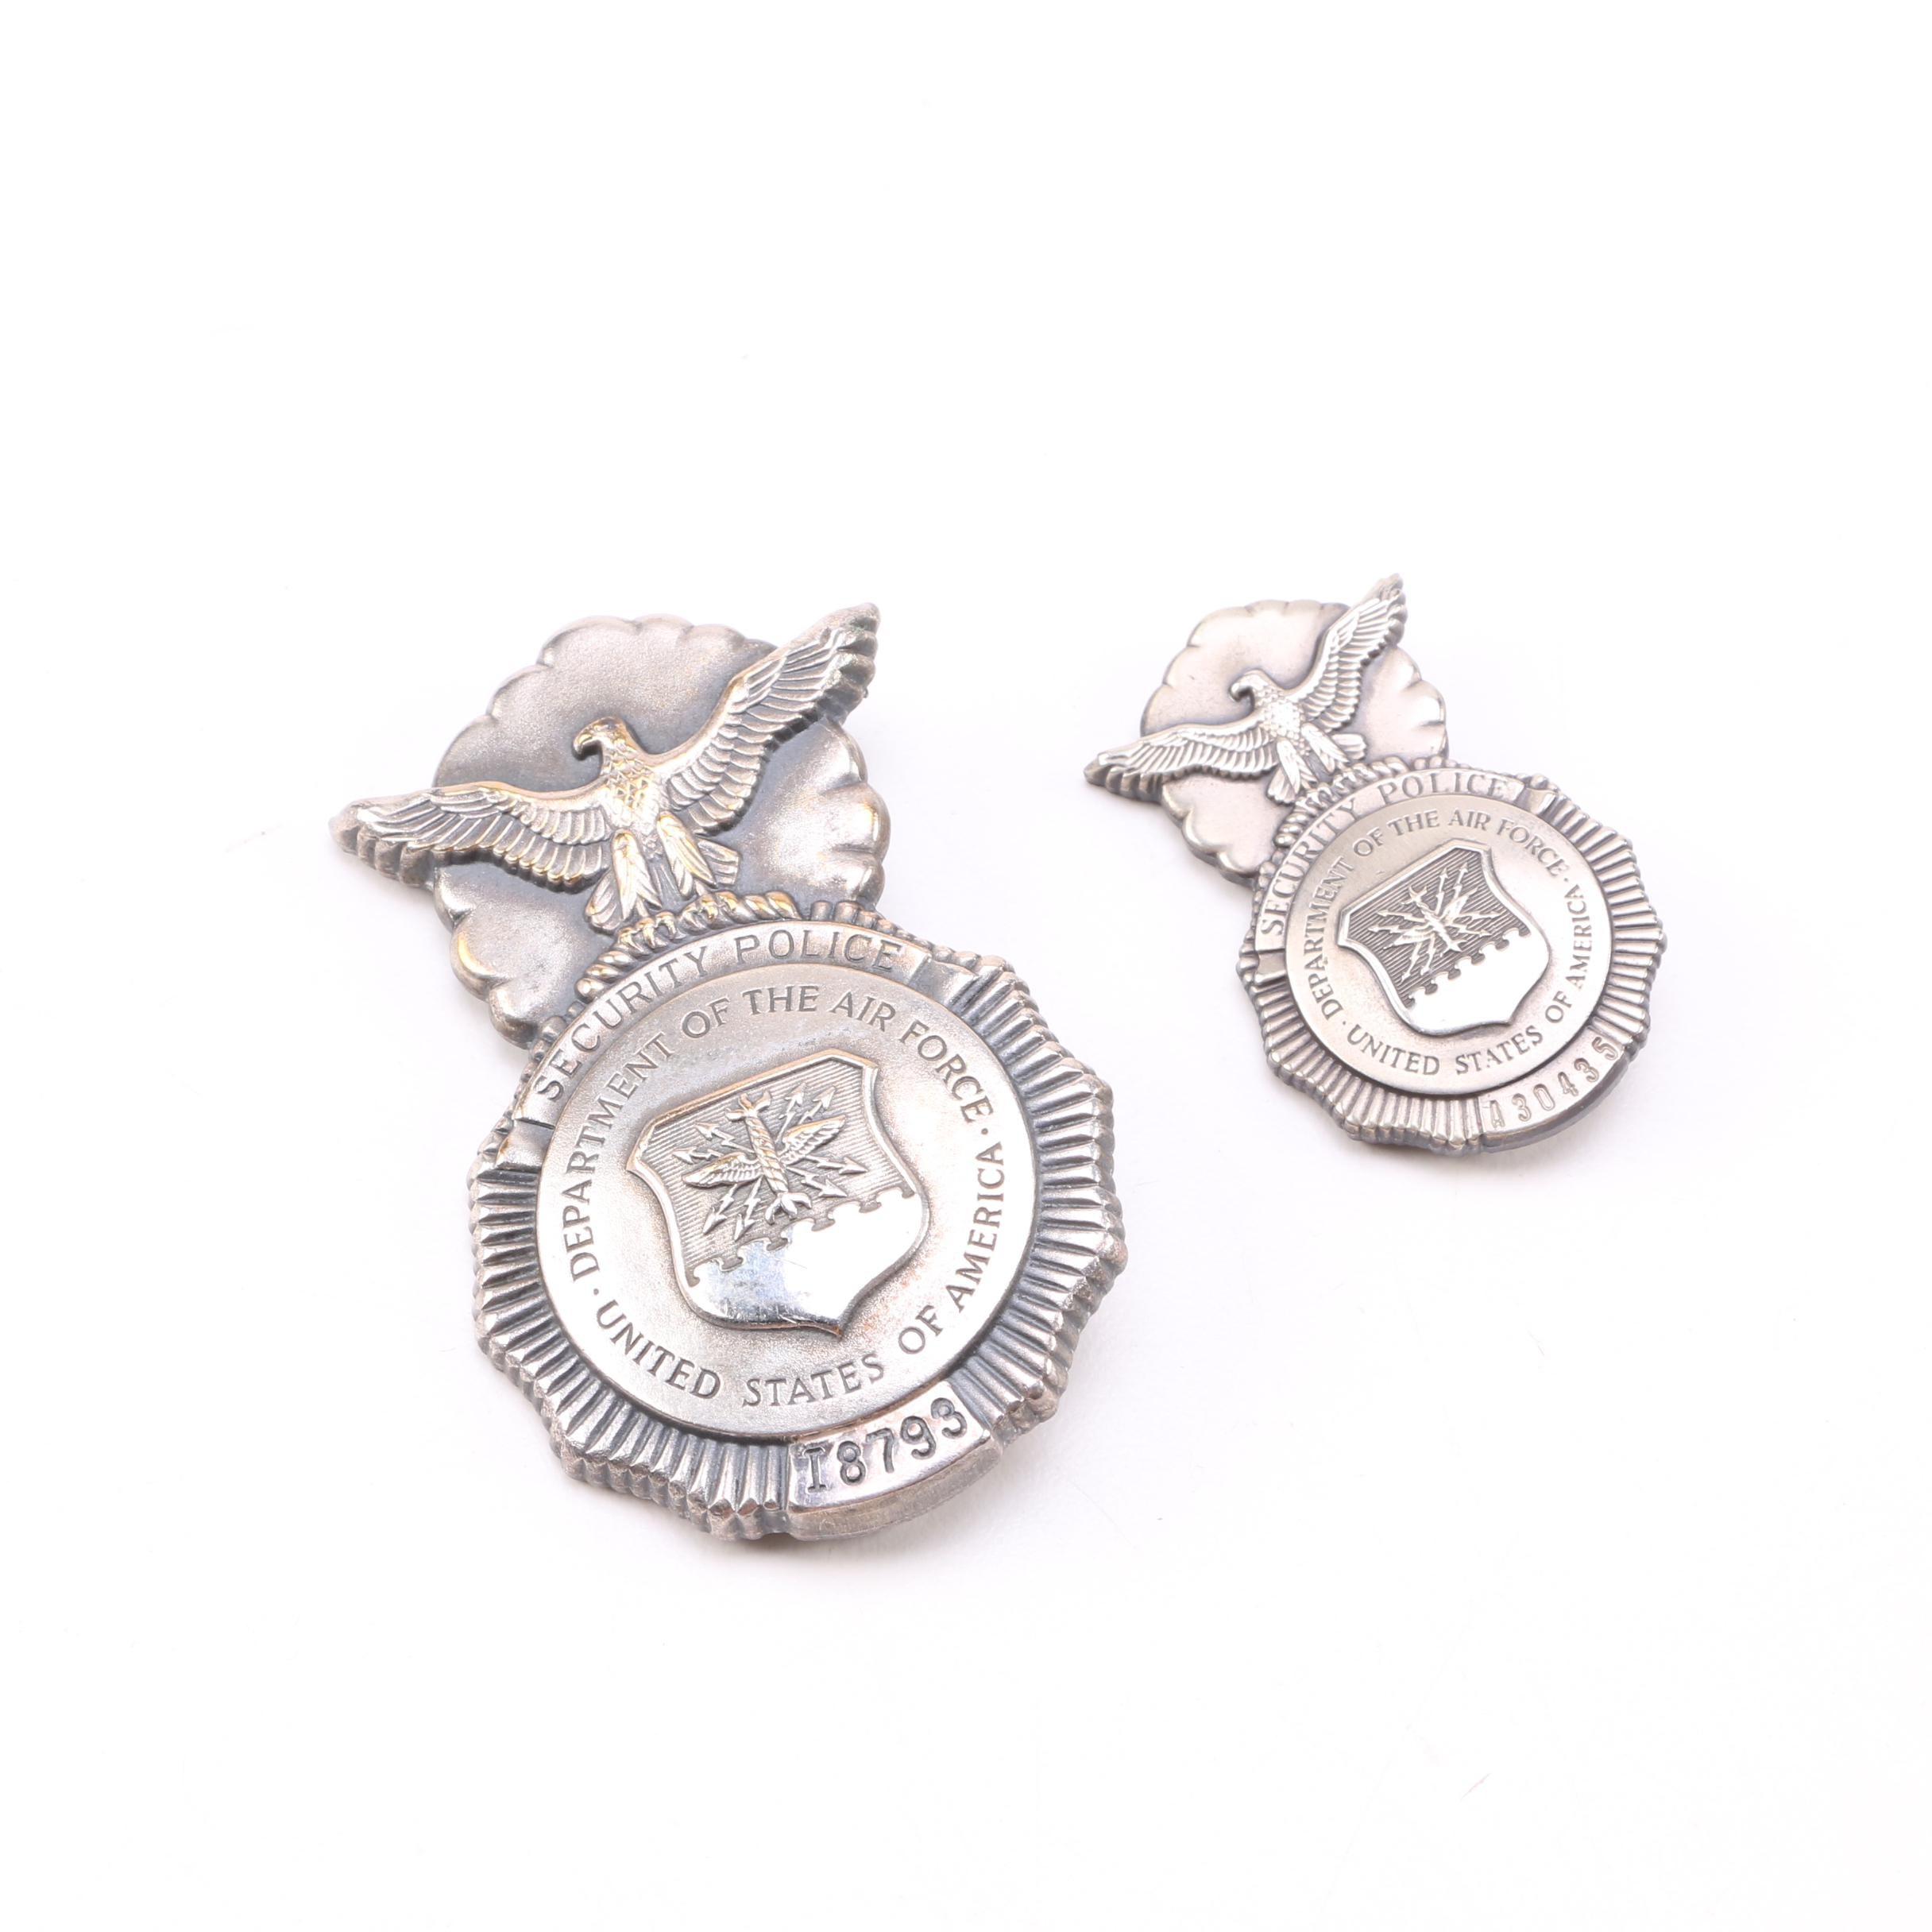 United States of America Air Force Pins